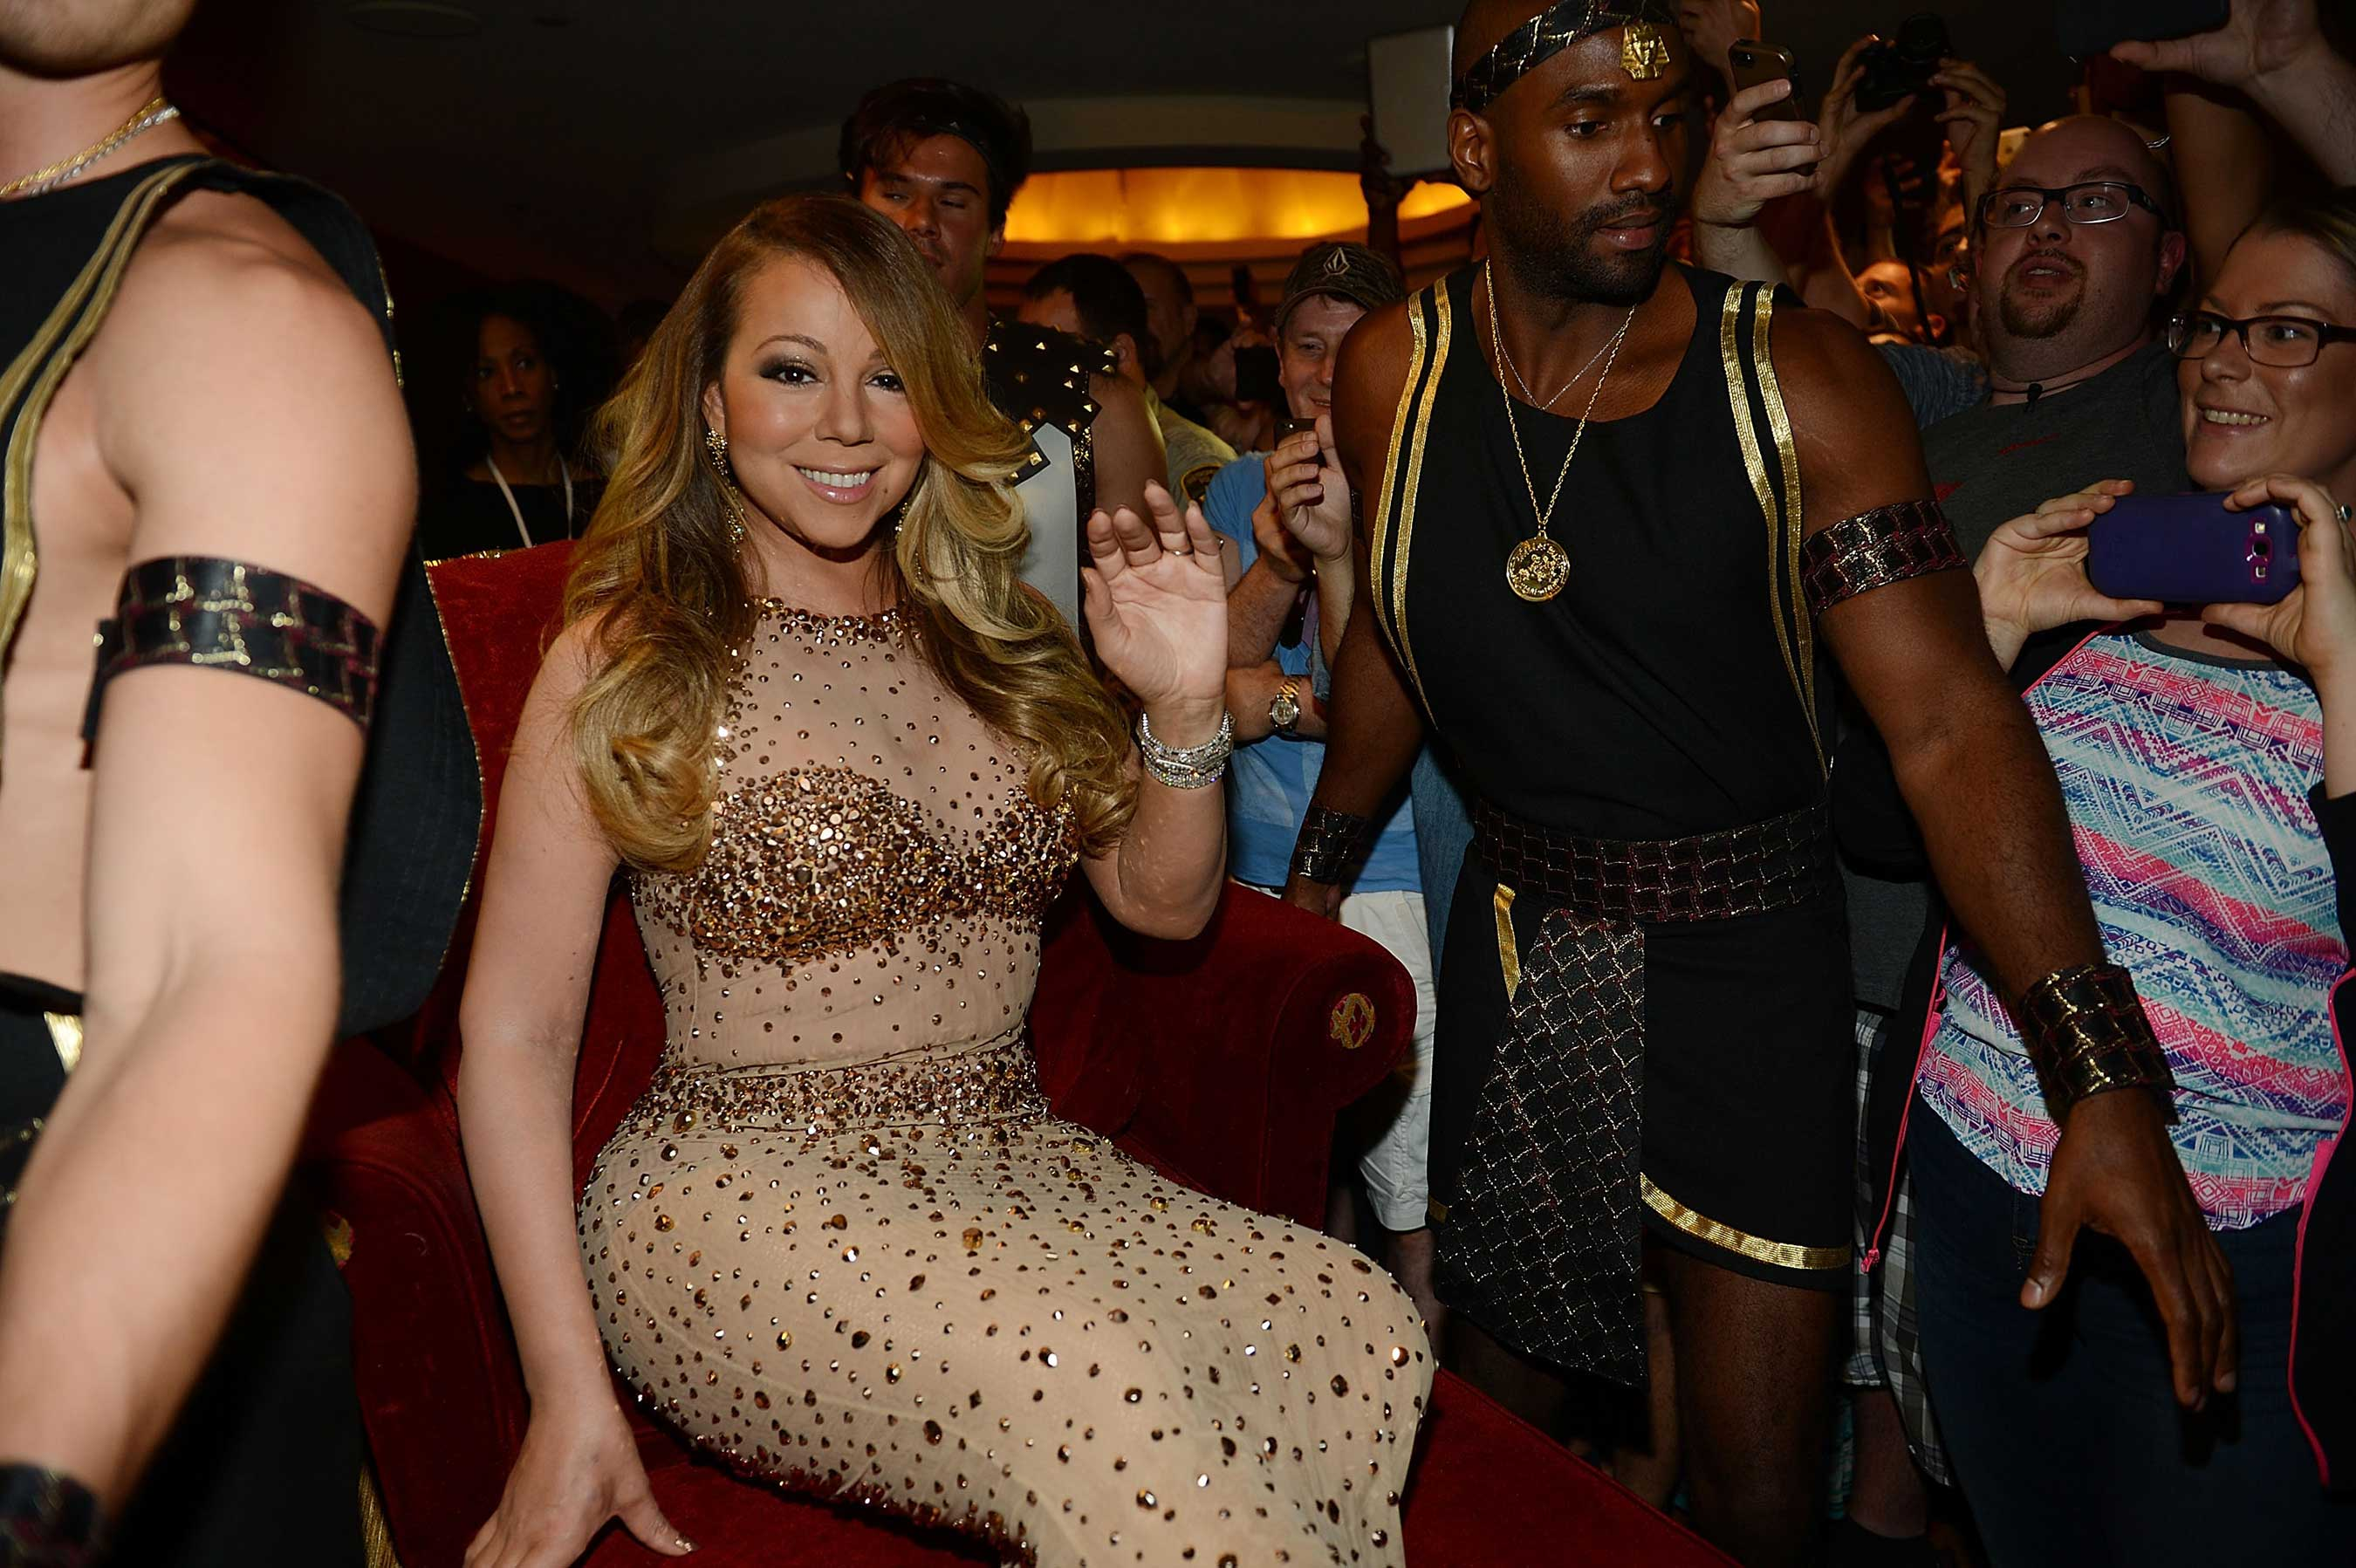 Mariah Carey, the best-selling female artist of all time, made her grand entrance to her new home at The Colosseum at Caesars Palace in Las Vegas on Monday, April 27. Photo Credit: Denise Truscello